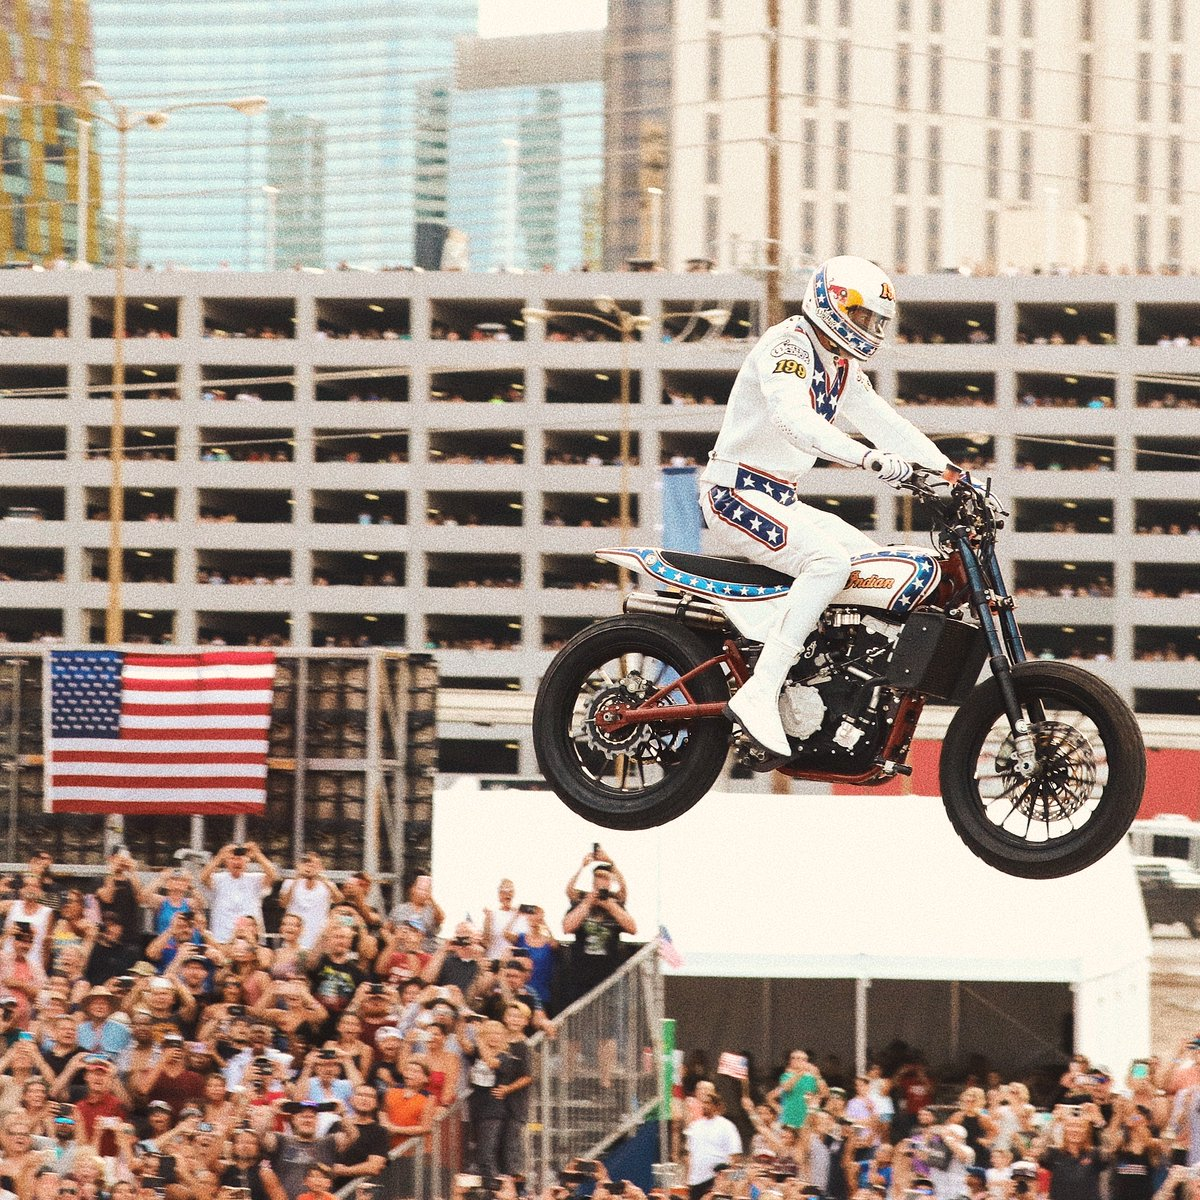 A 52 car #IndependenceDay throwback. Enjoy a safe Fourth of July.  @TravisPastrana jumps an Indian #FTR750 as part of #EvelLive.  #indianmotorcyclepic.twitter.com/ZZ9NcIraNi